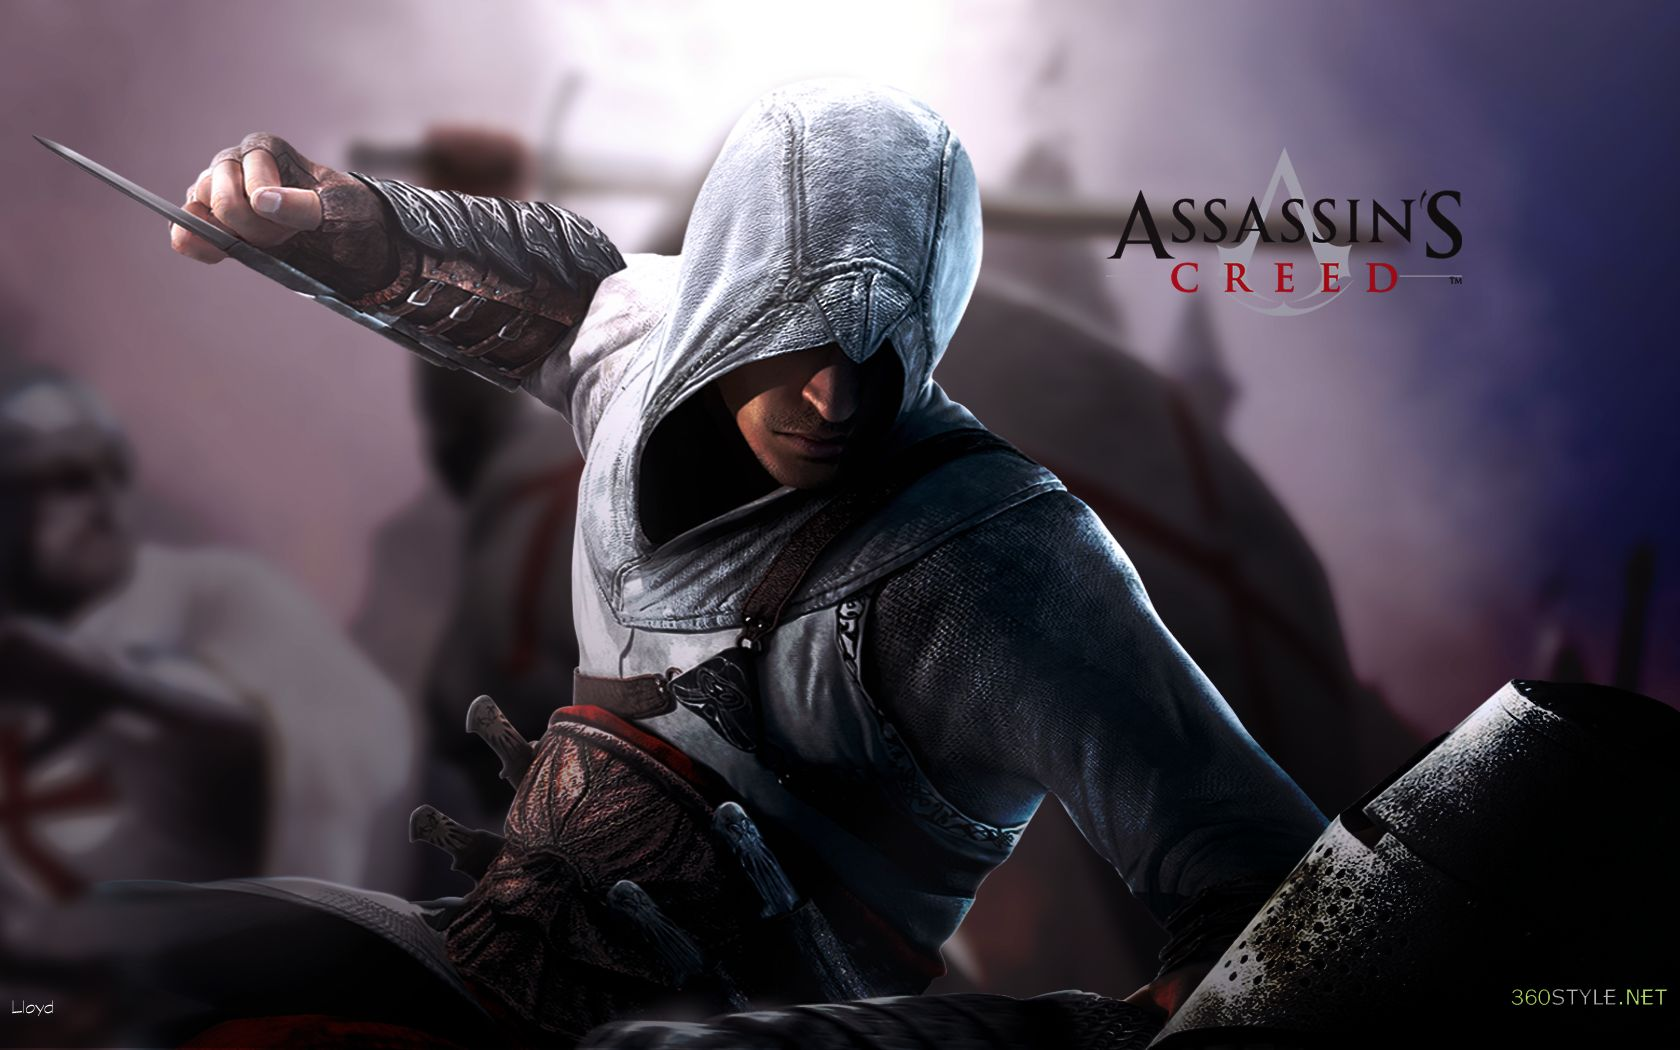 Assassins Creed Wallpaper by igotgame1075 1680x1050